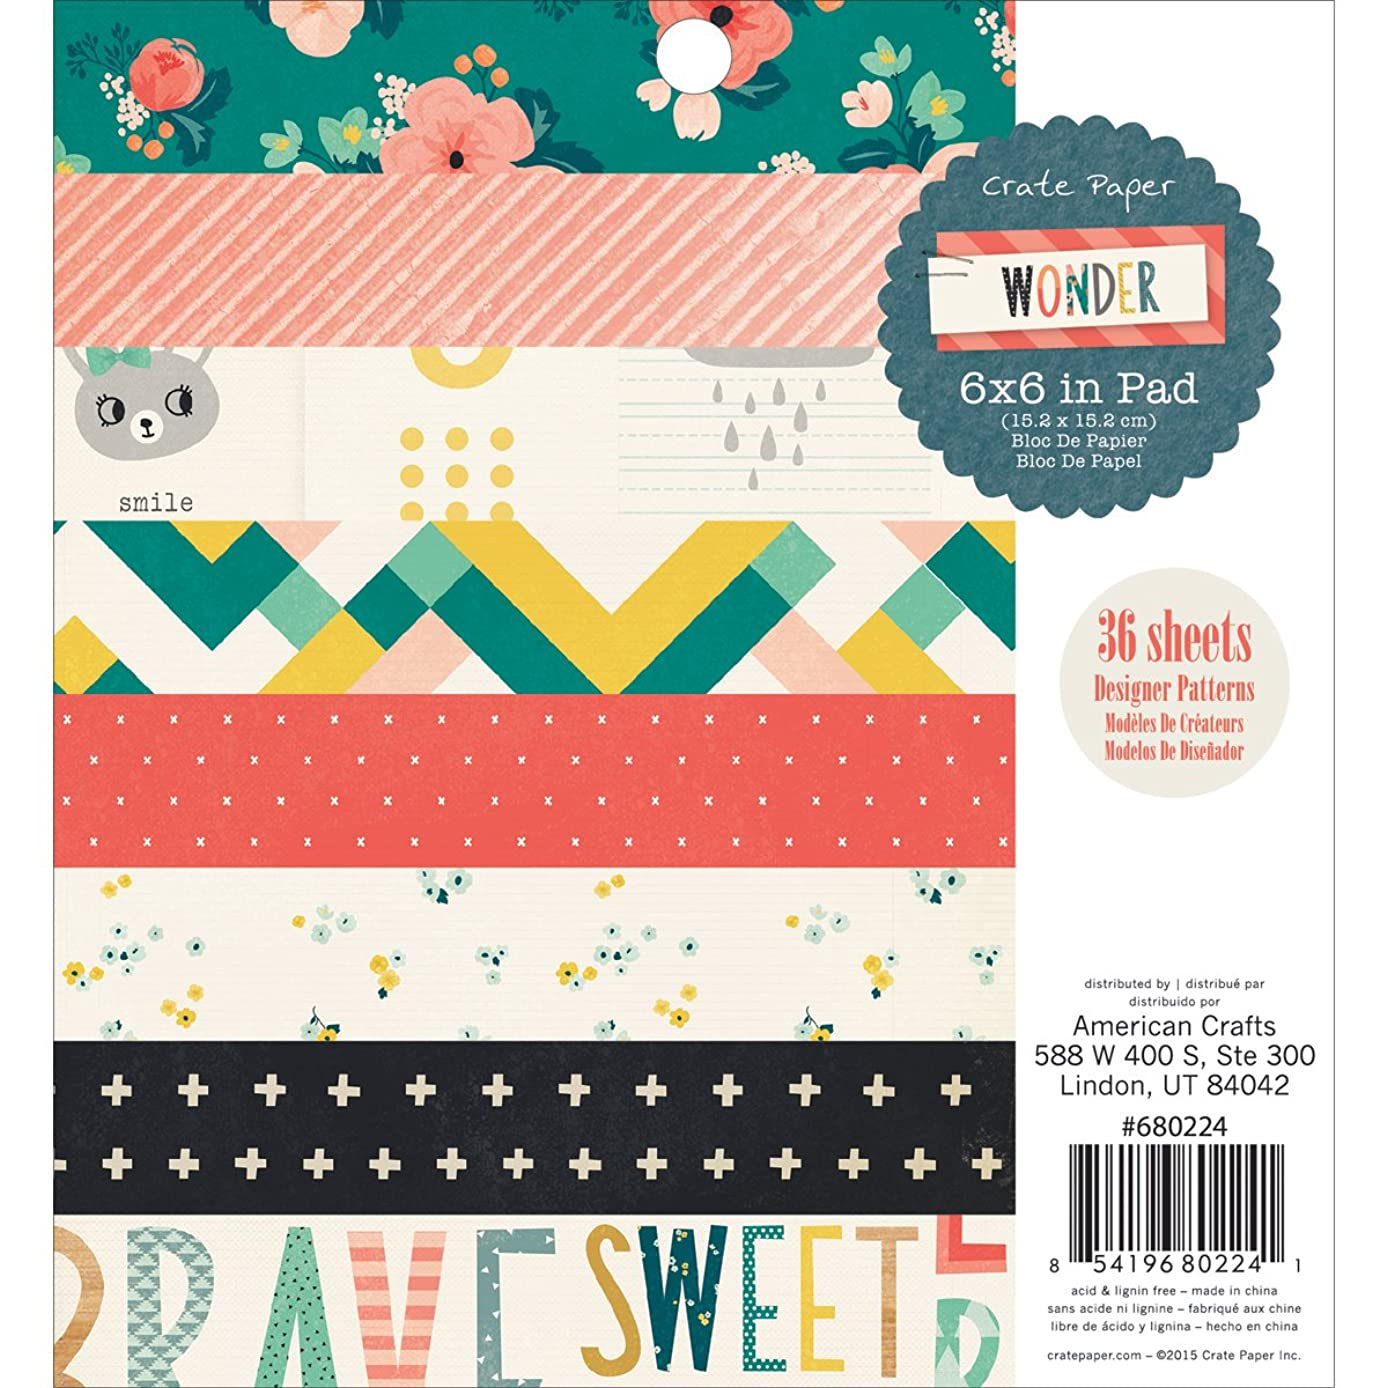 American Crafts 36 Sheet Crate Wonder Paper Pad, 6 by 6